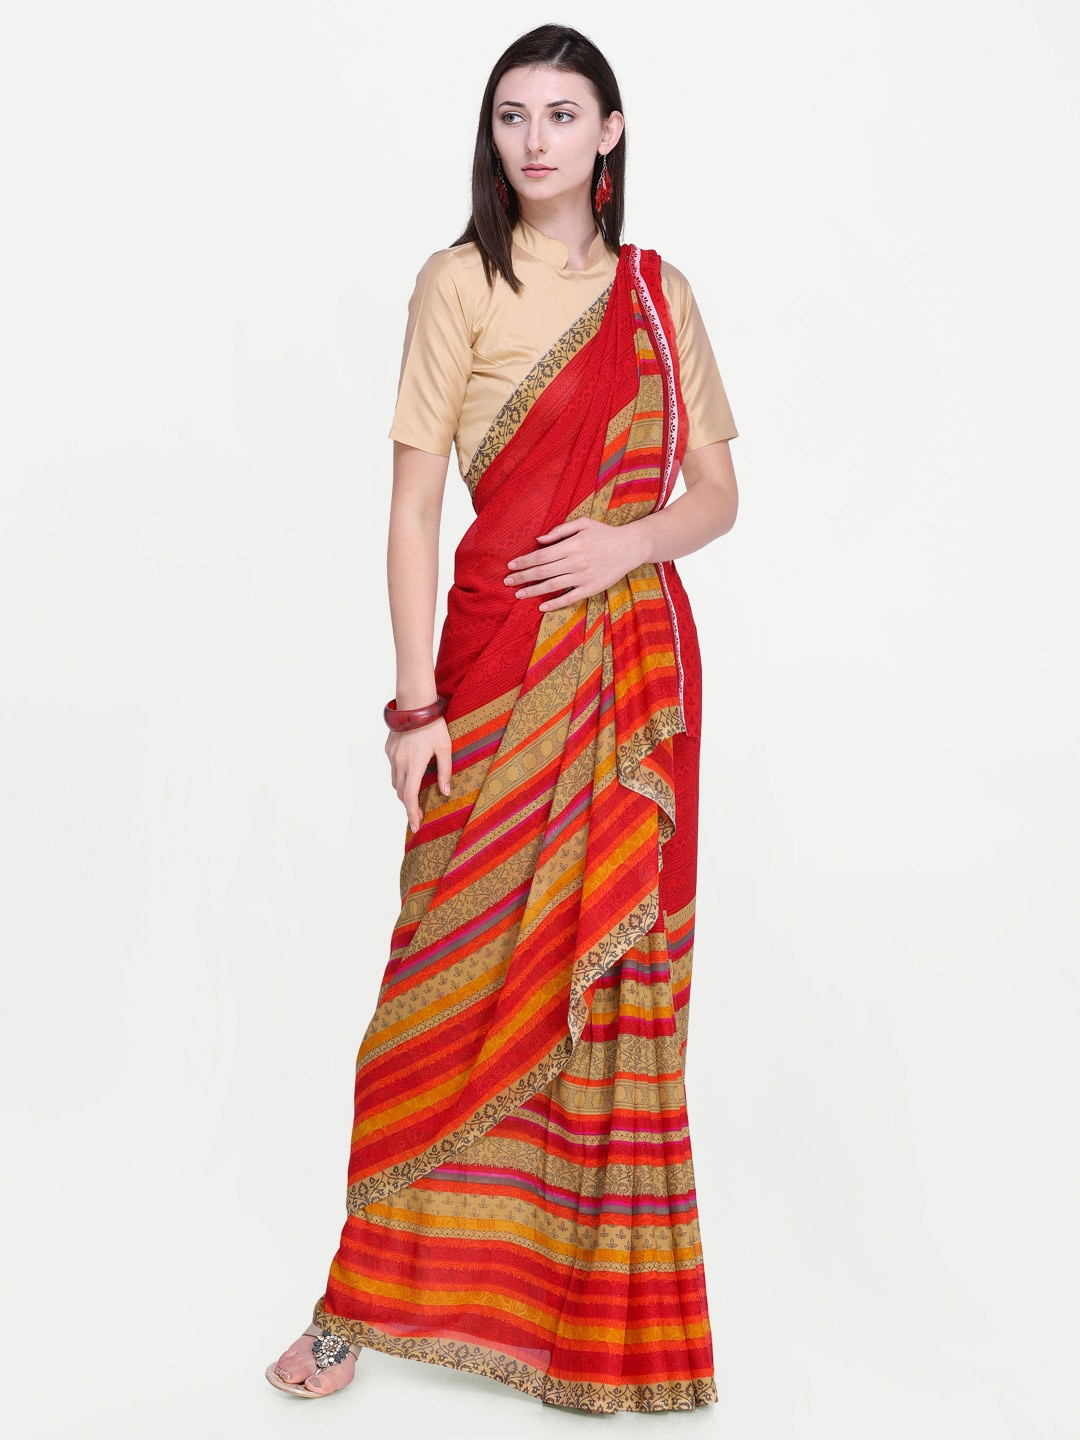 62a695b60 Saree - Buy Sarees Online at Best Price in India